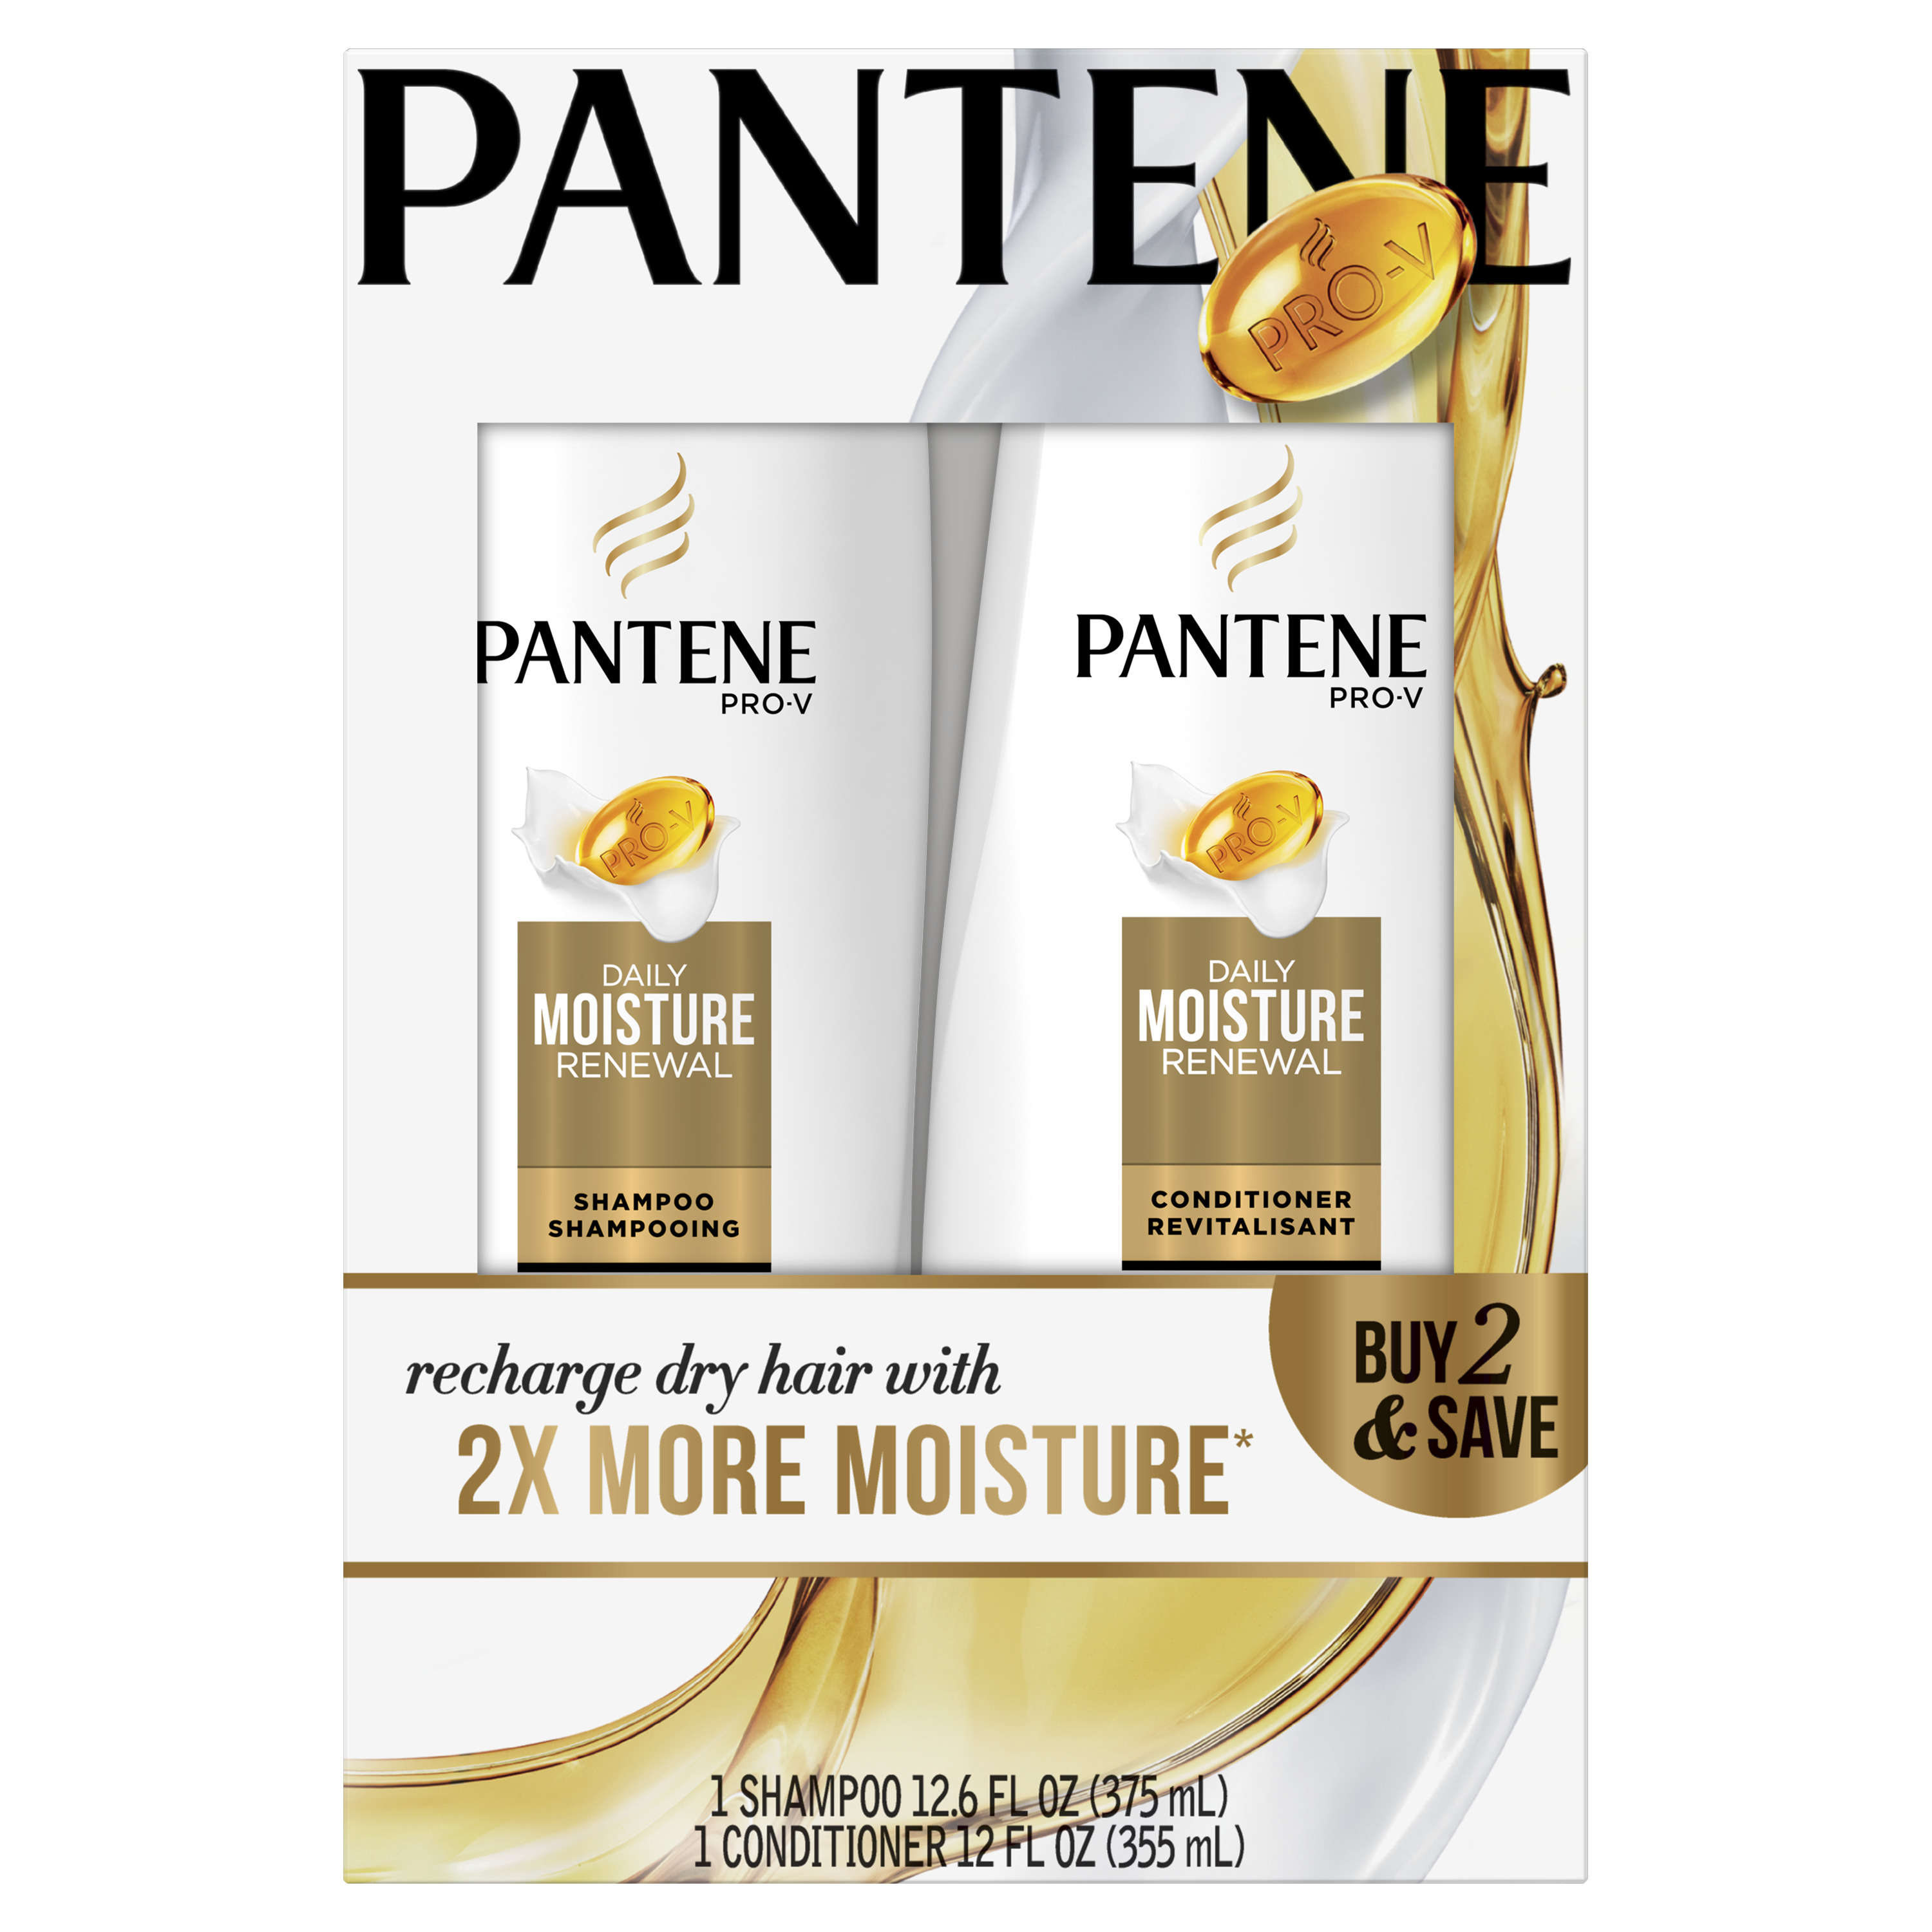 Pantene Pro-V Daily Moisture Renewal Shampoo and Conditioner Dual Pack, 24.6 fl oz